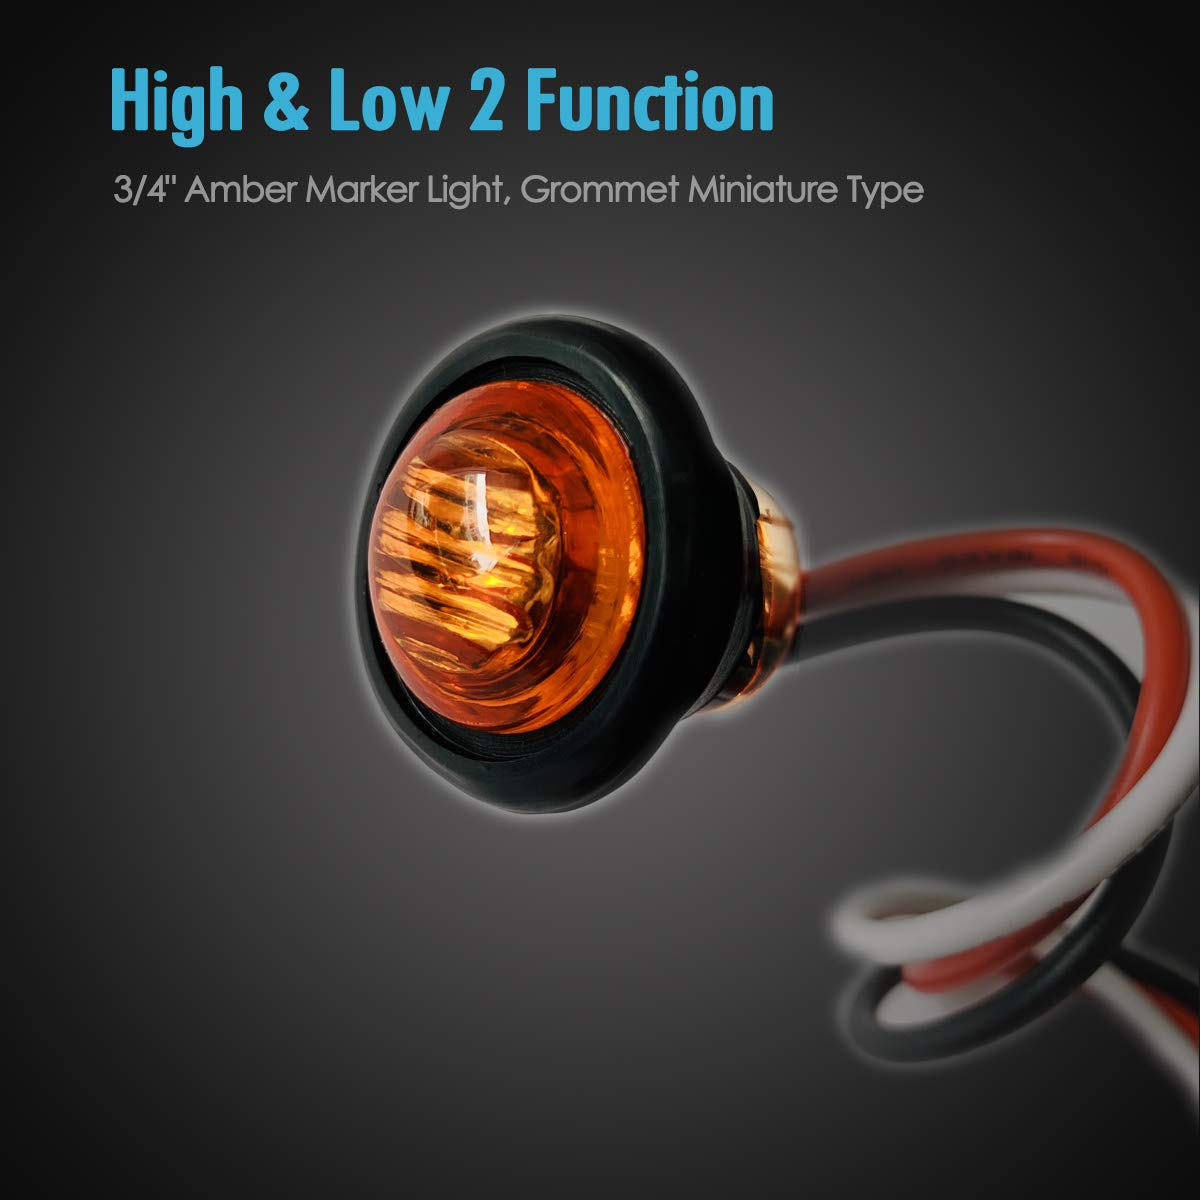 Pack of 2 TCTAuto 3//4 Amber Motorcycle Turn Signals LED Light Rubber Grommet Miniature Type with 3 Wire 2 Function High /& Low